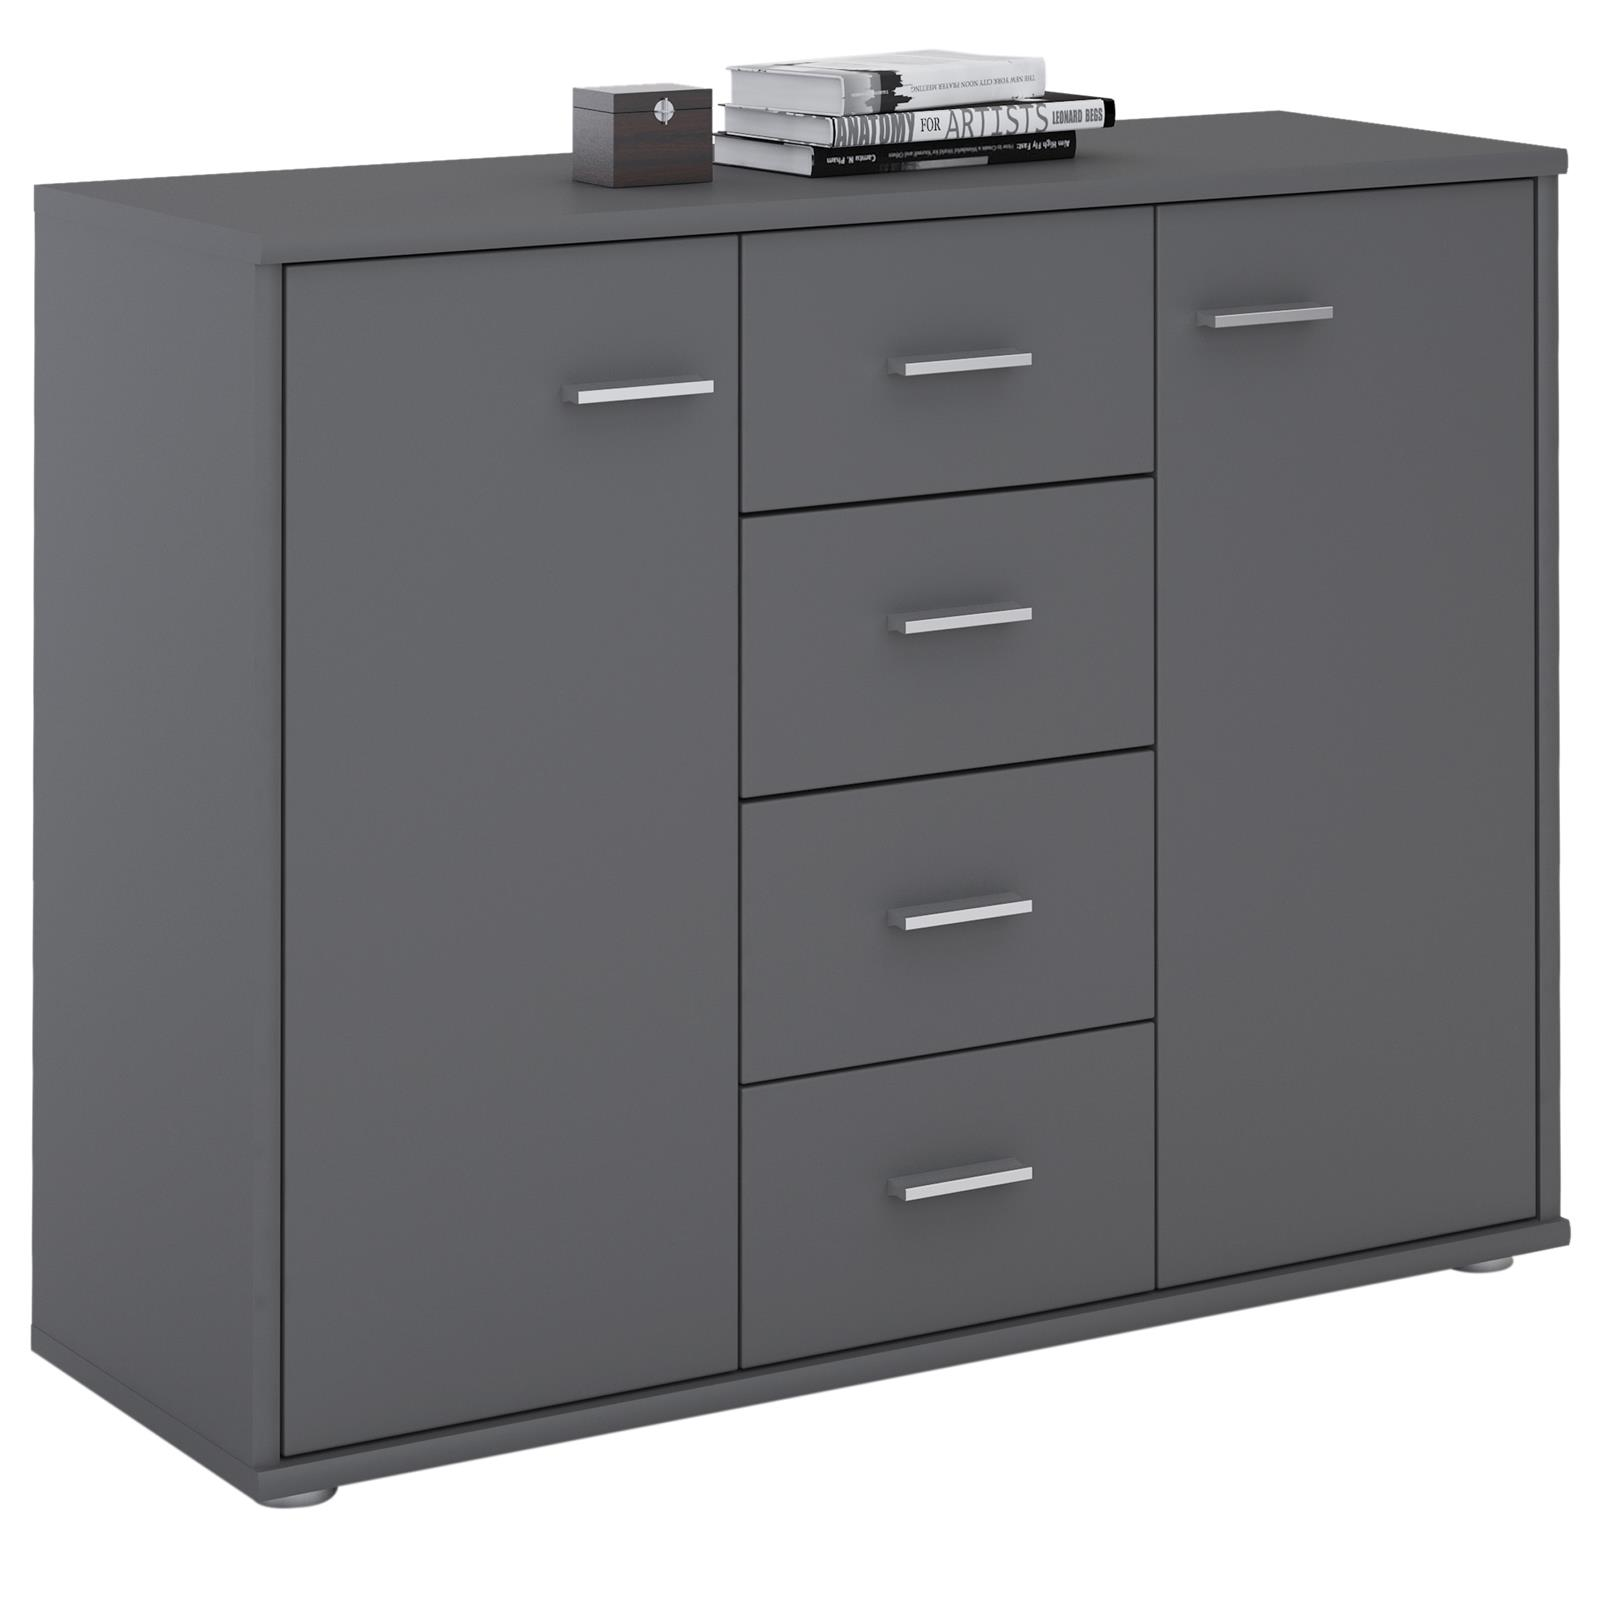 sideboard kommode mehrzweckschrank f r wohnzimmer anrichte design 2 t ren ebay. Black Bedroom Furniture Sets. Home Design Ideas